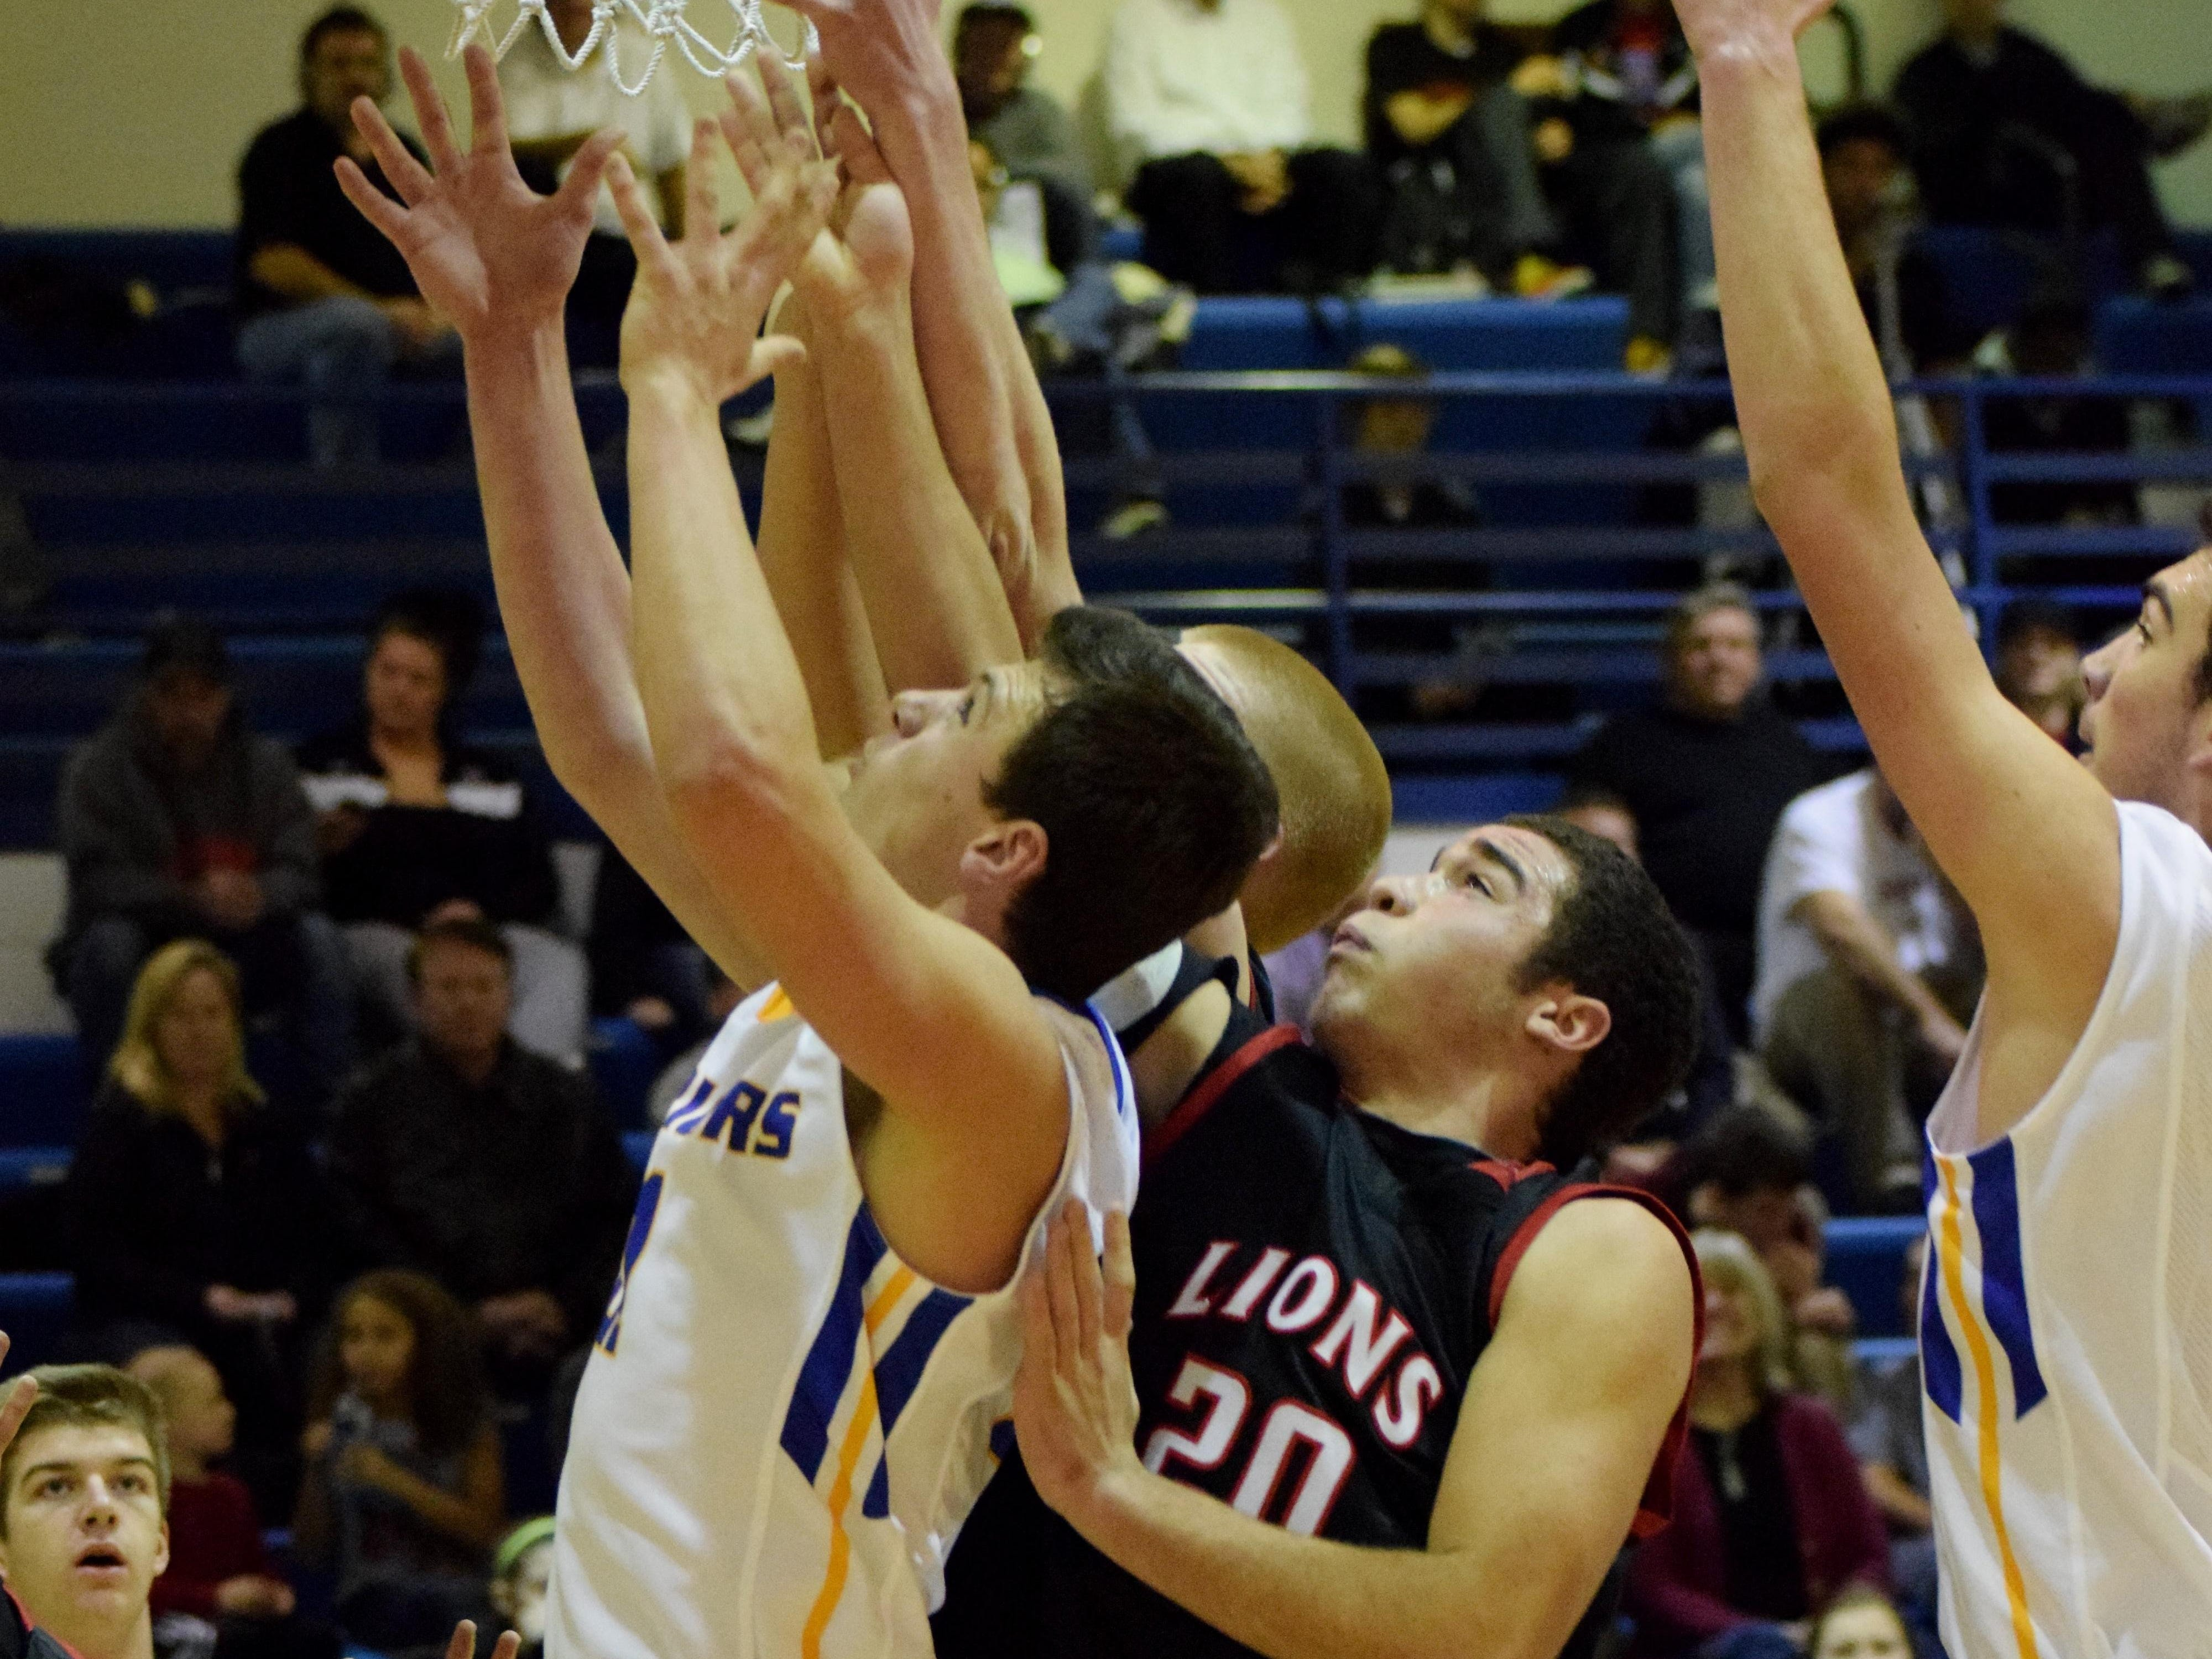 Mariemont's Brennan Crowley, front, fights for a rebound against New Richmond's Isiah Young (20).